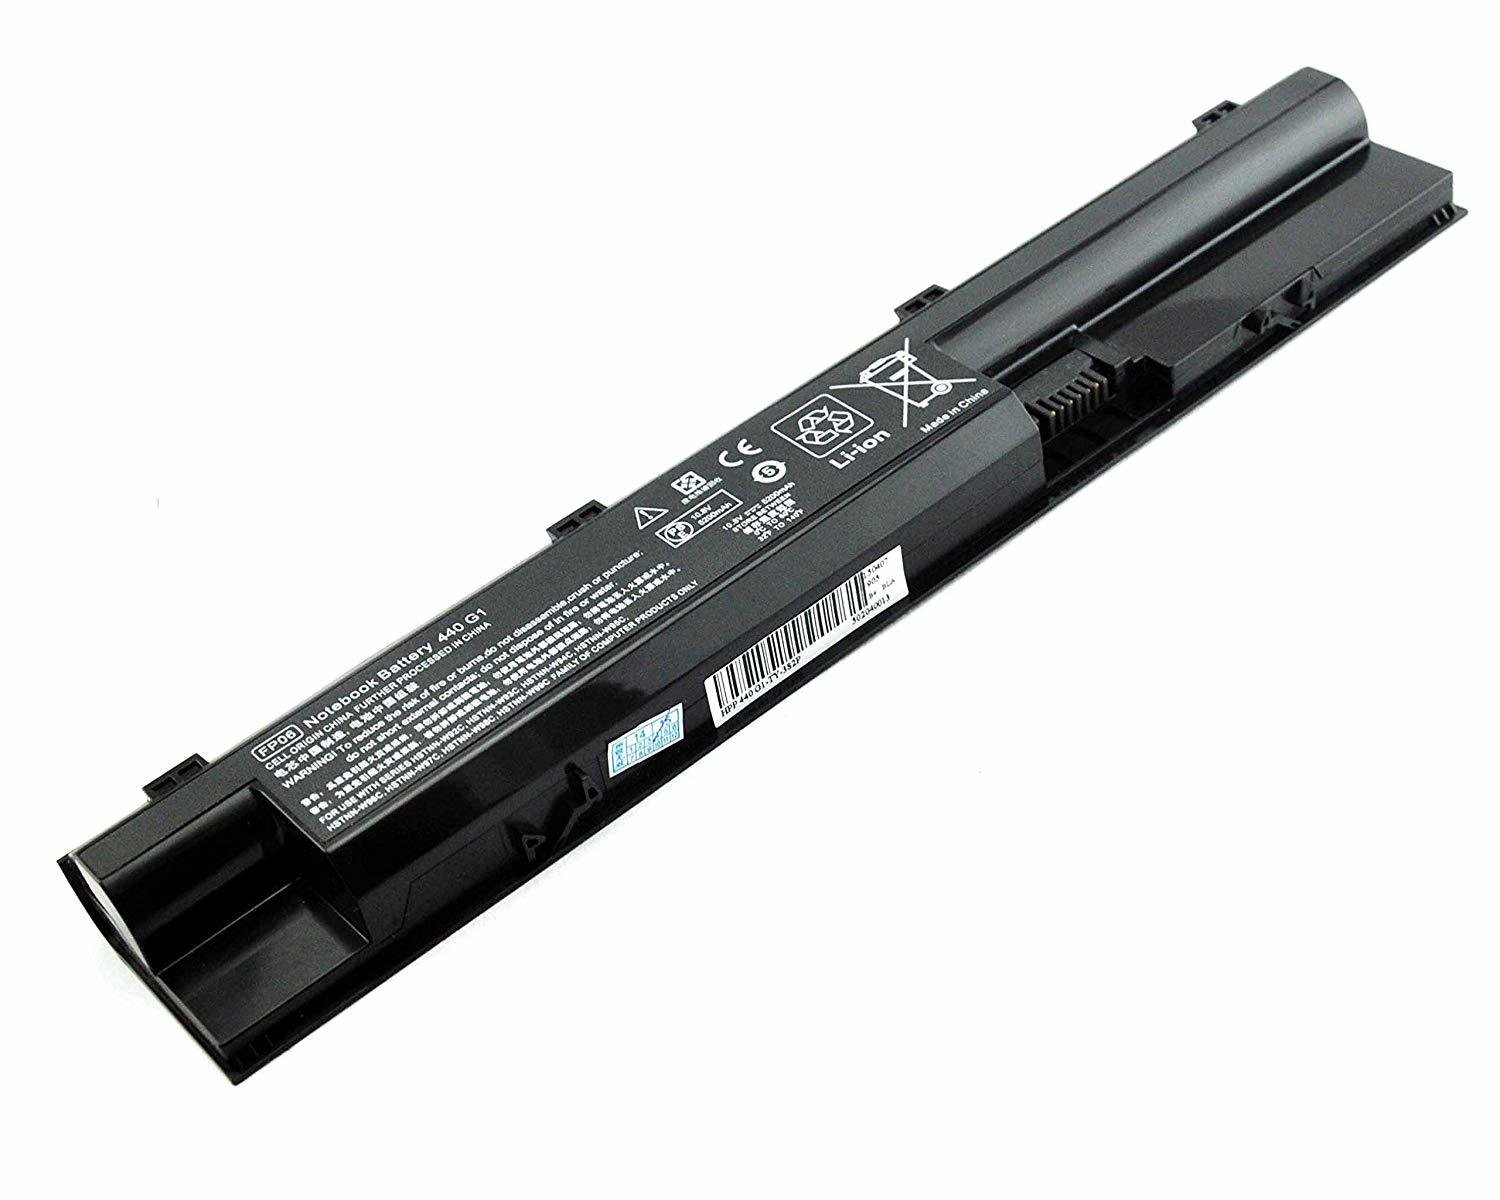 HP probook FP06 HSTNN-W97C HSTNN-W98C HSTNN-W99C Compatible laptop battery